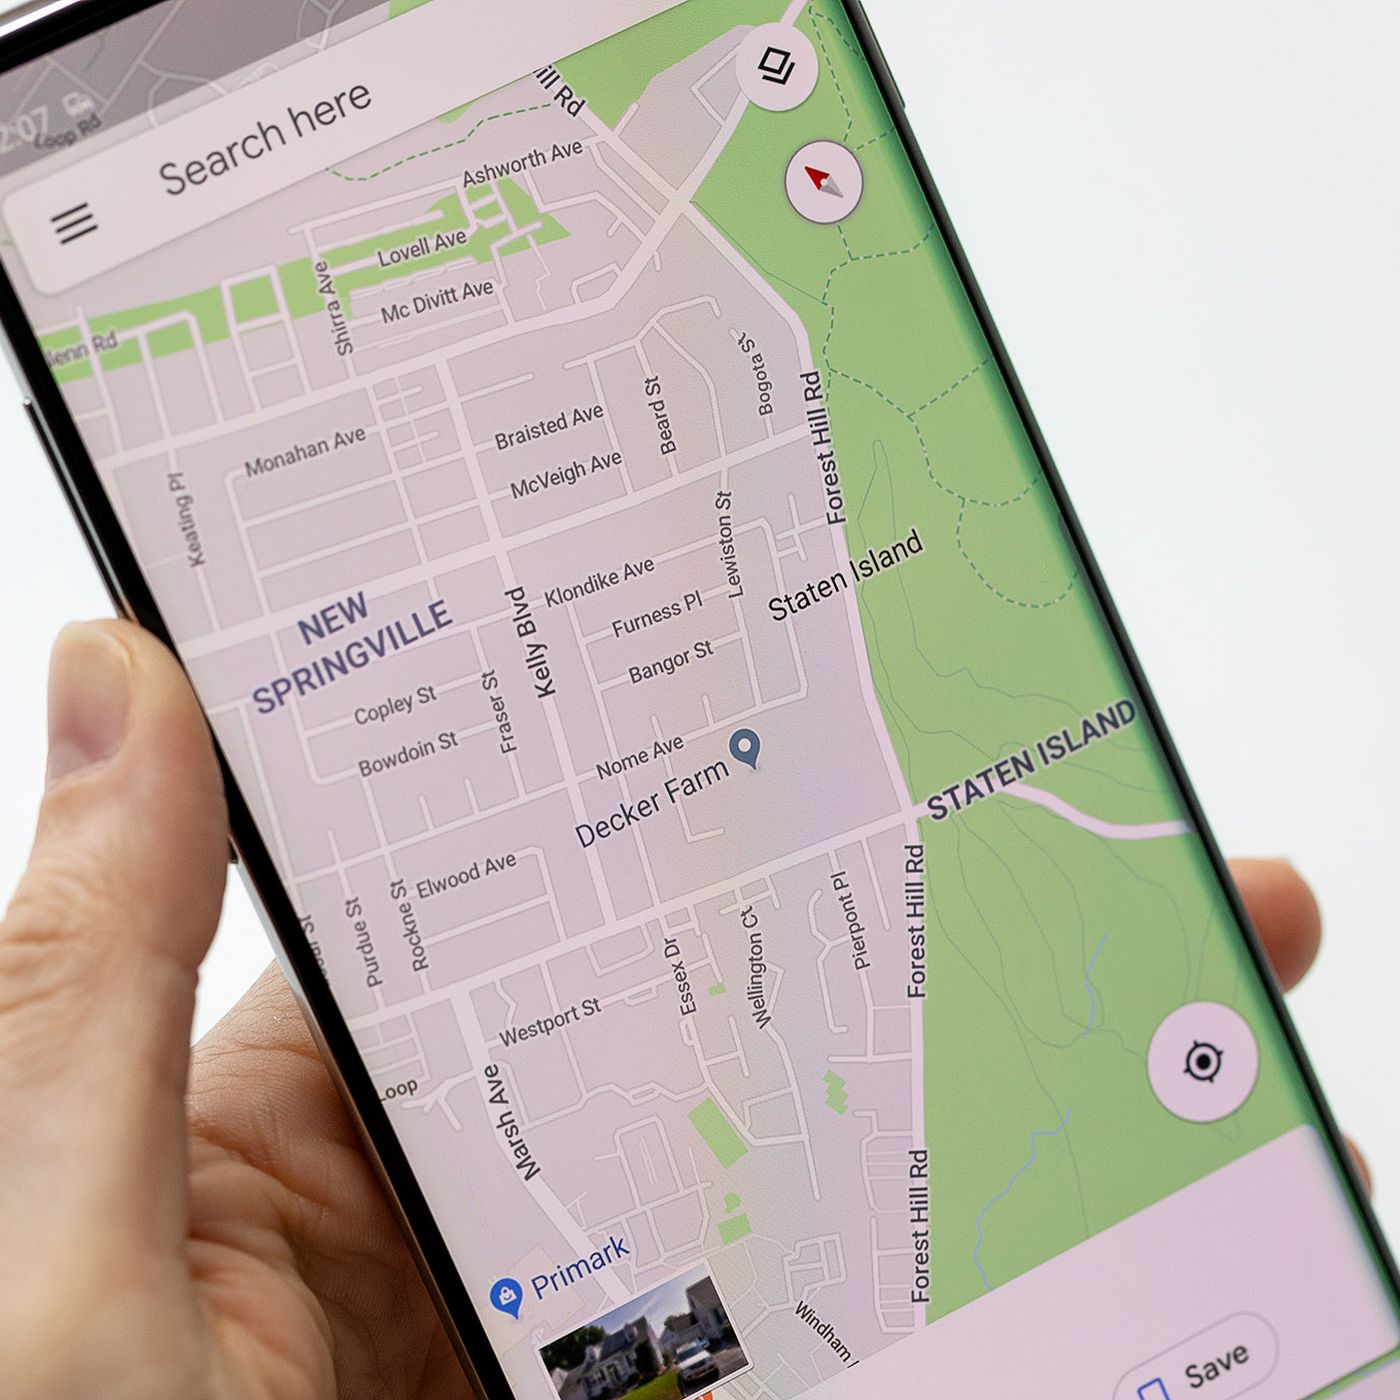 How to use Google Maps to save your parking location - The Verge